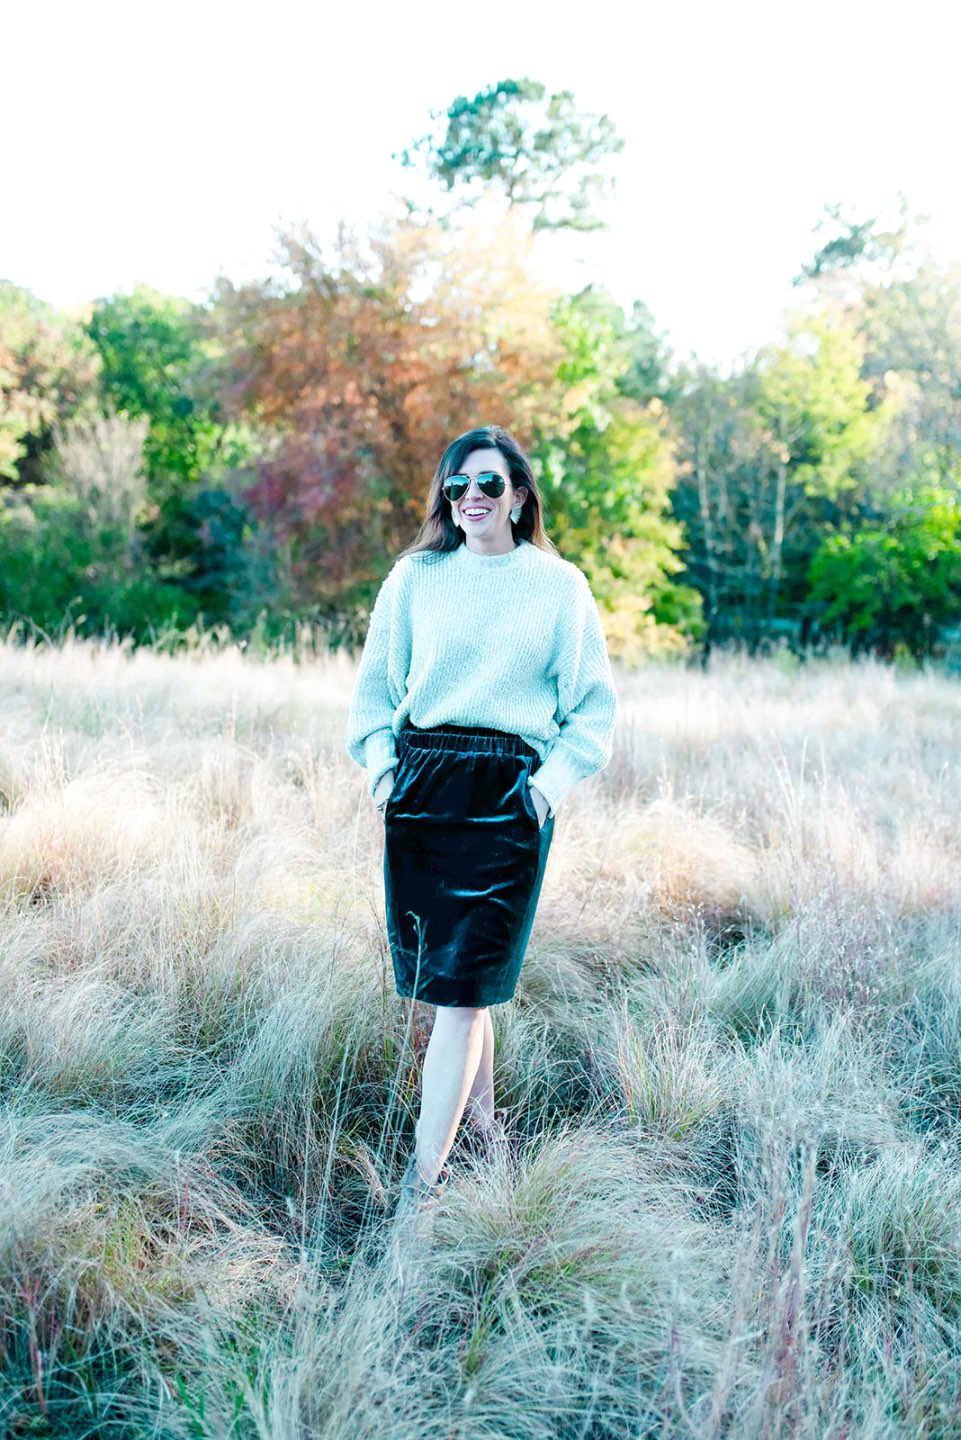 4 Outfit Ideas for Thanksgiving Supper - I'm Fixin' To - @mbg0112 | 4 Thanksgiving Outfit Ideas by popular North Carolina fashion blog, I'm Fixin' To: image of a woman outside wearing a Nordstrom TopShop Bouclé Sweater, J. Crew Velvet pull-on skirt, and Nordstrom Vince Camuto Cava Perforated Pointy Toe Boot.